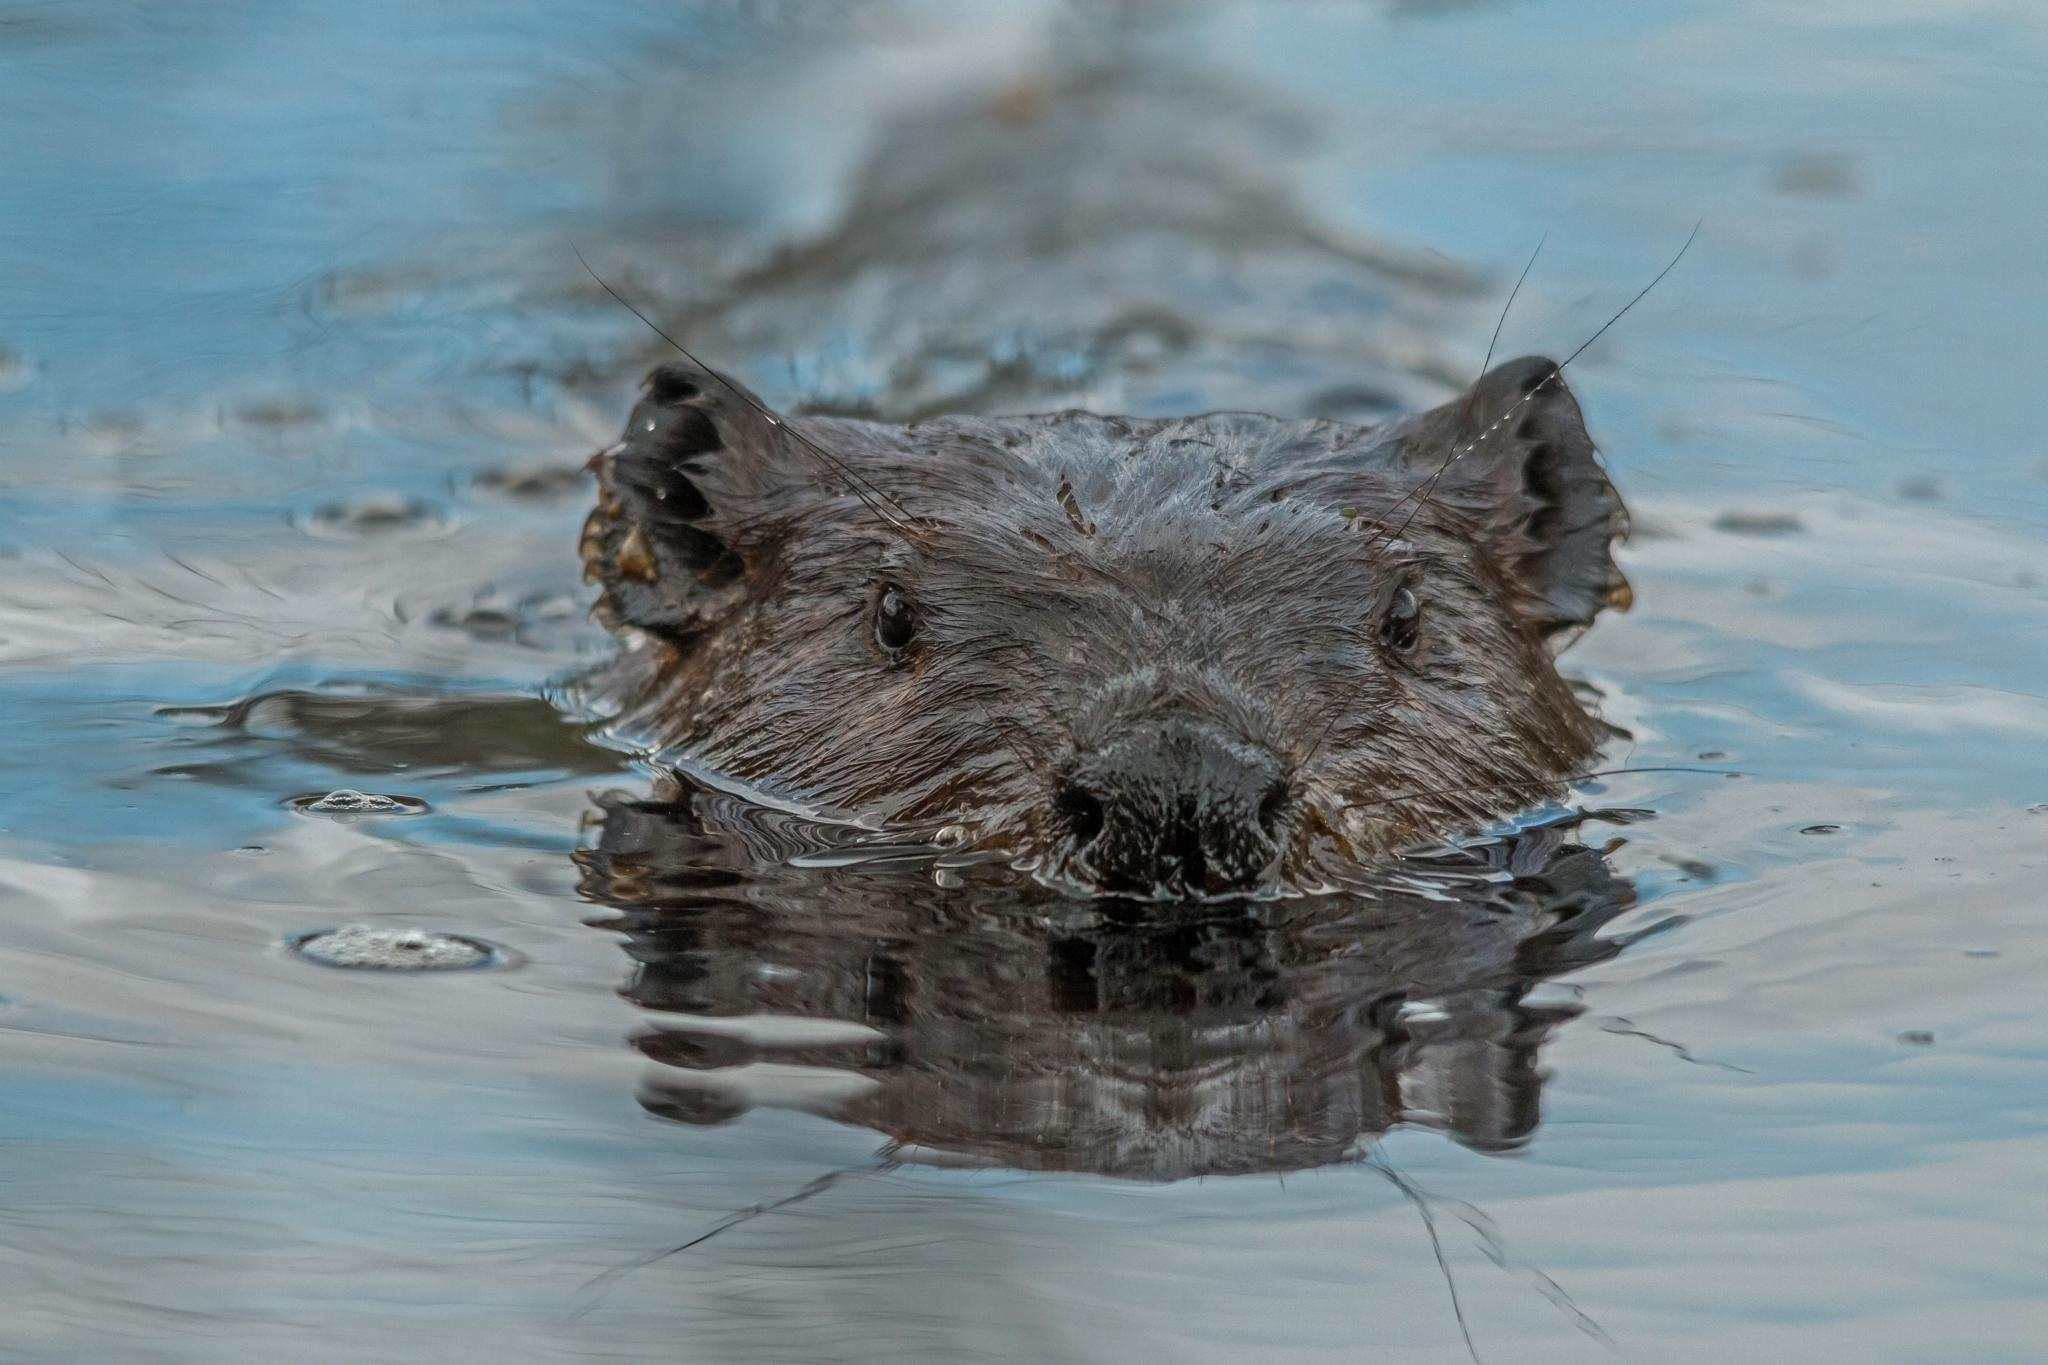 The Beaver by Steve Dunsford